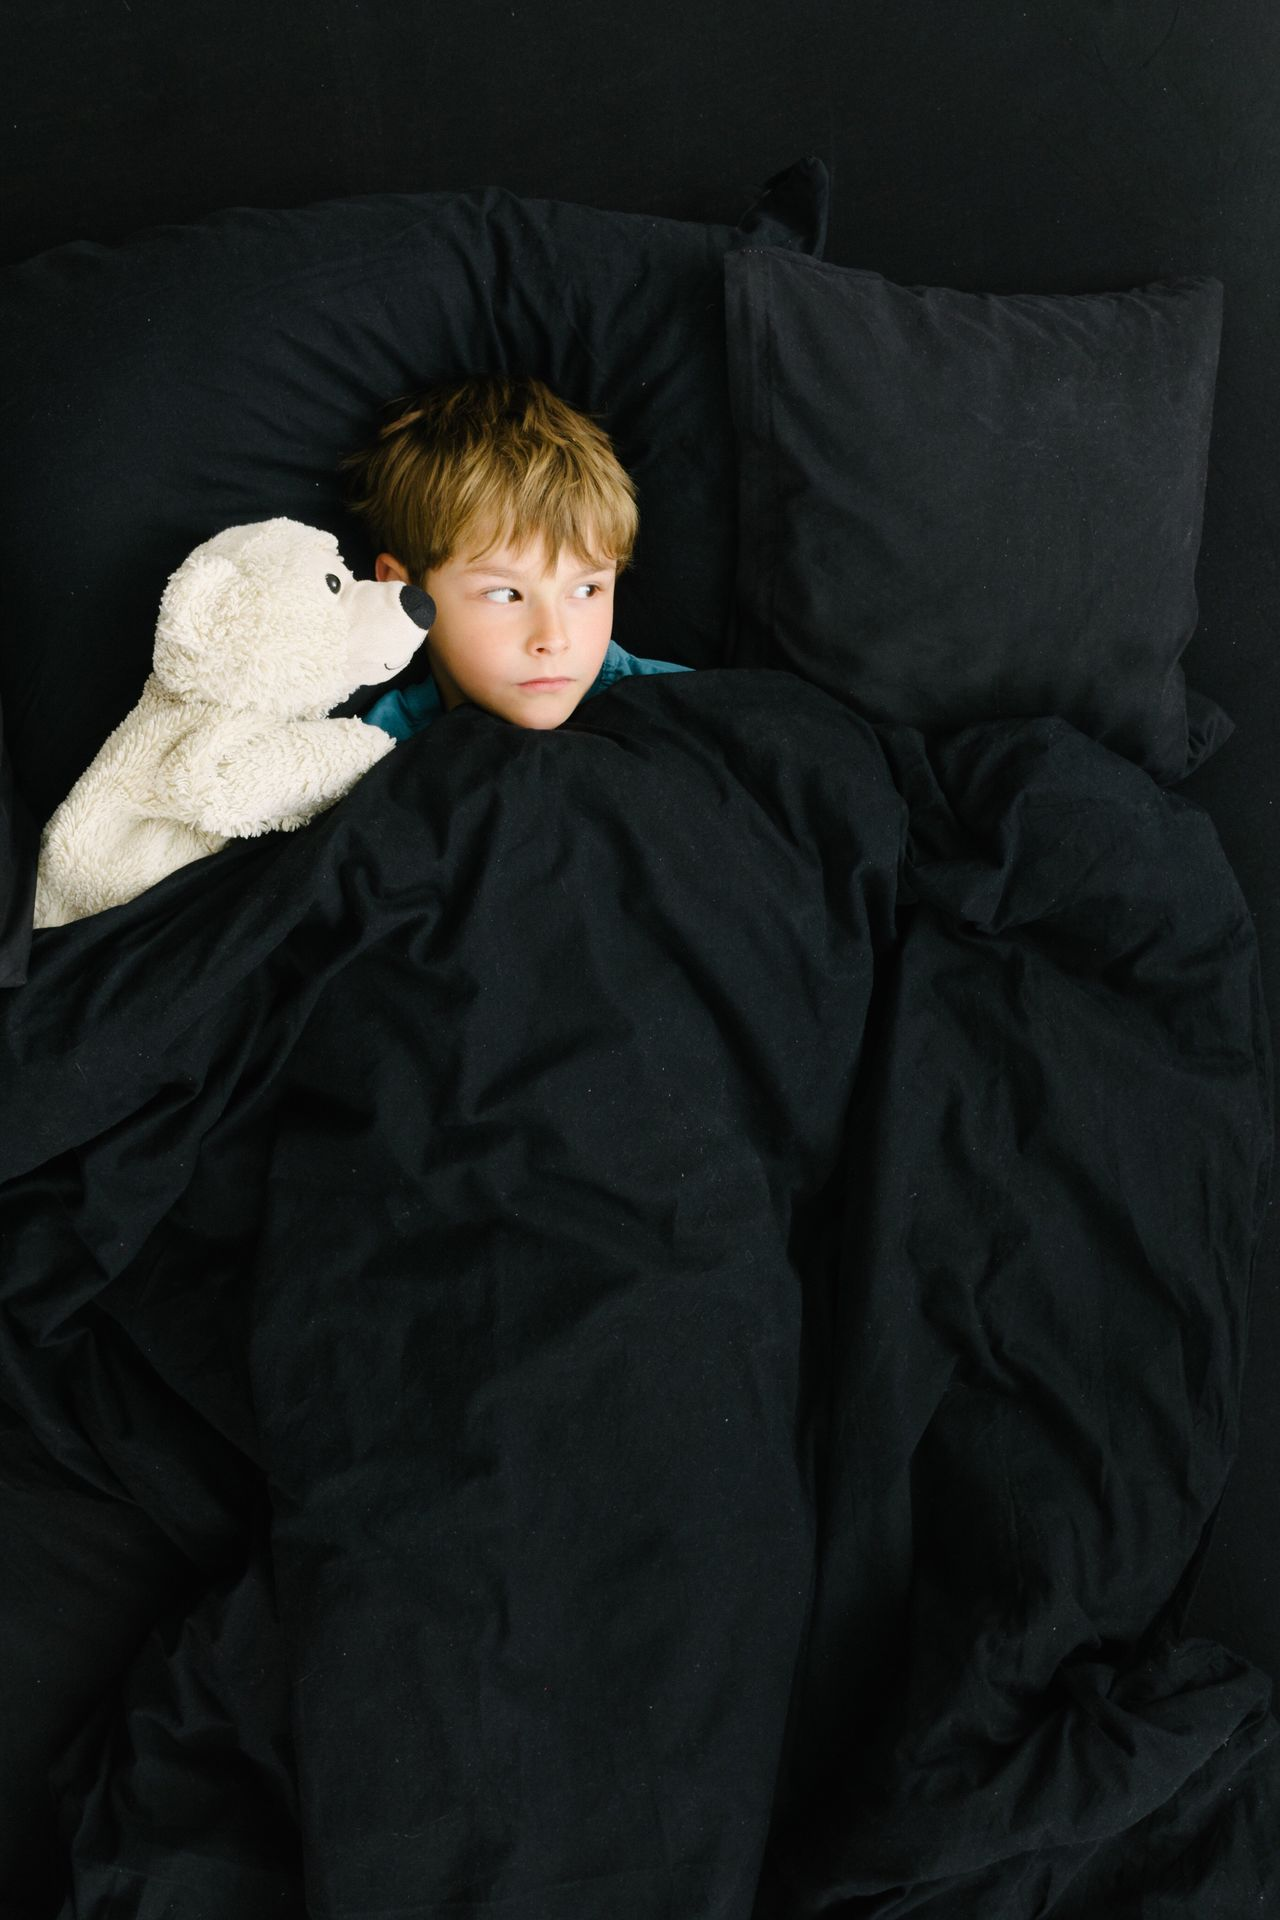 Boy and his ice bear in black bed covers Welcome To Black Boy Child Ice Bear Toy Plüschtier Friends Imagination Bed Black Empty Kids Covered Sheets People Portrait One Boy Only Light And Shadow Berlin Waking Up Awake